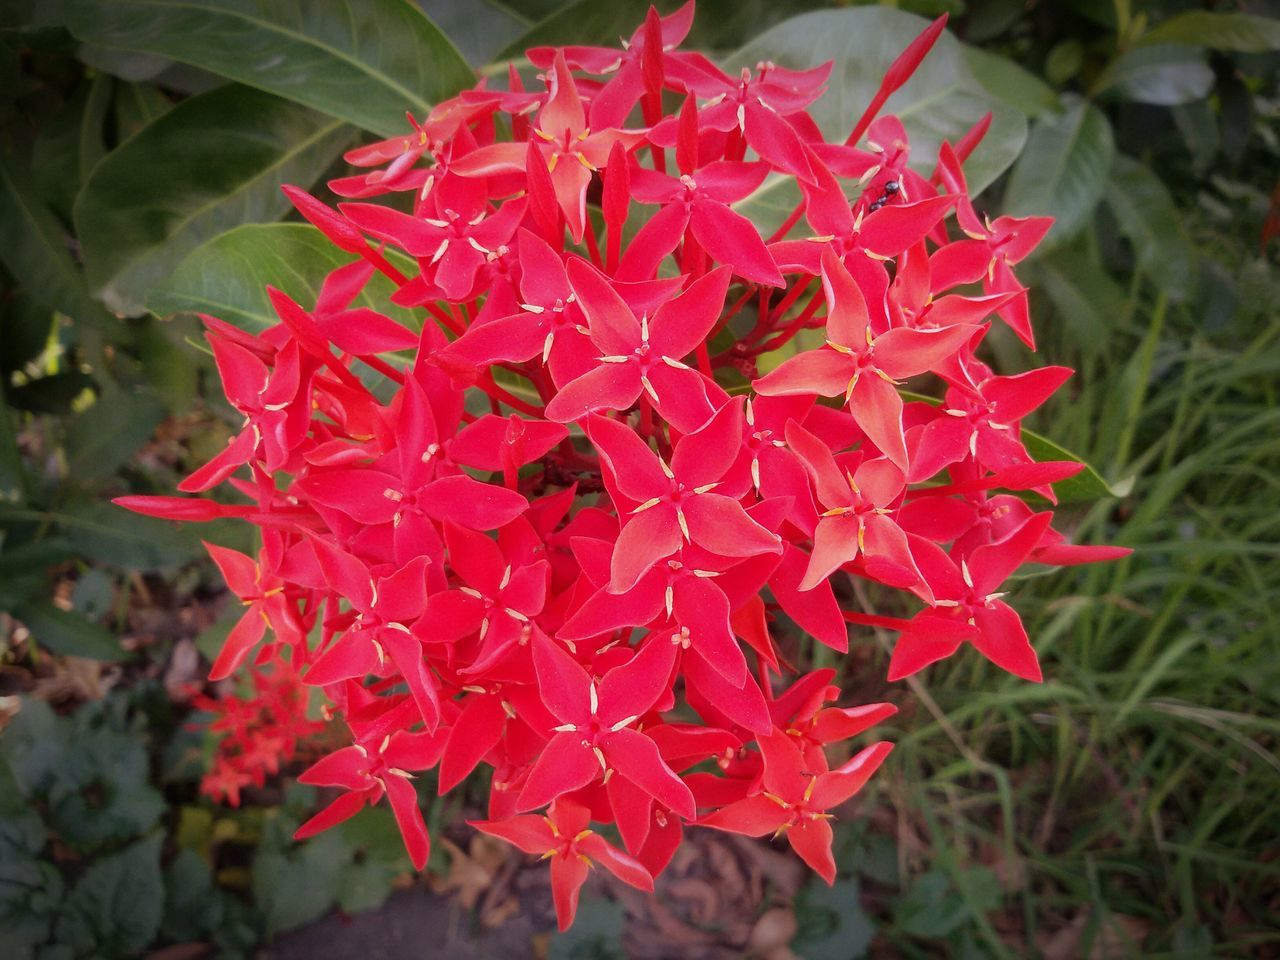 red, ixora, growth, flower, beauty in nature, petal, freshness, nature, focus on foreground, fragility, flower head, day, blooming, close-up, plant, outdoors, no people